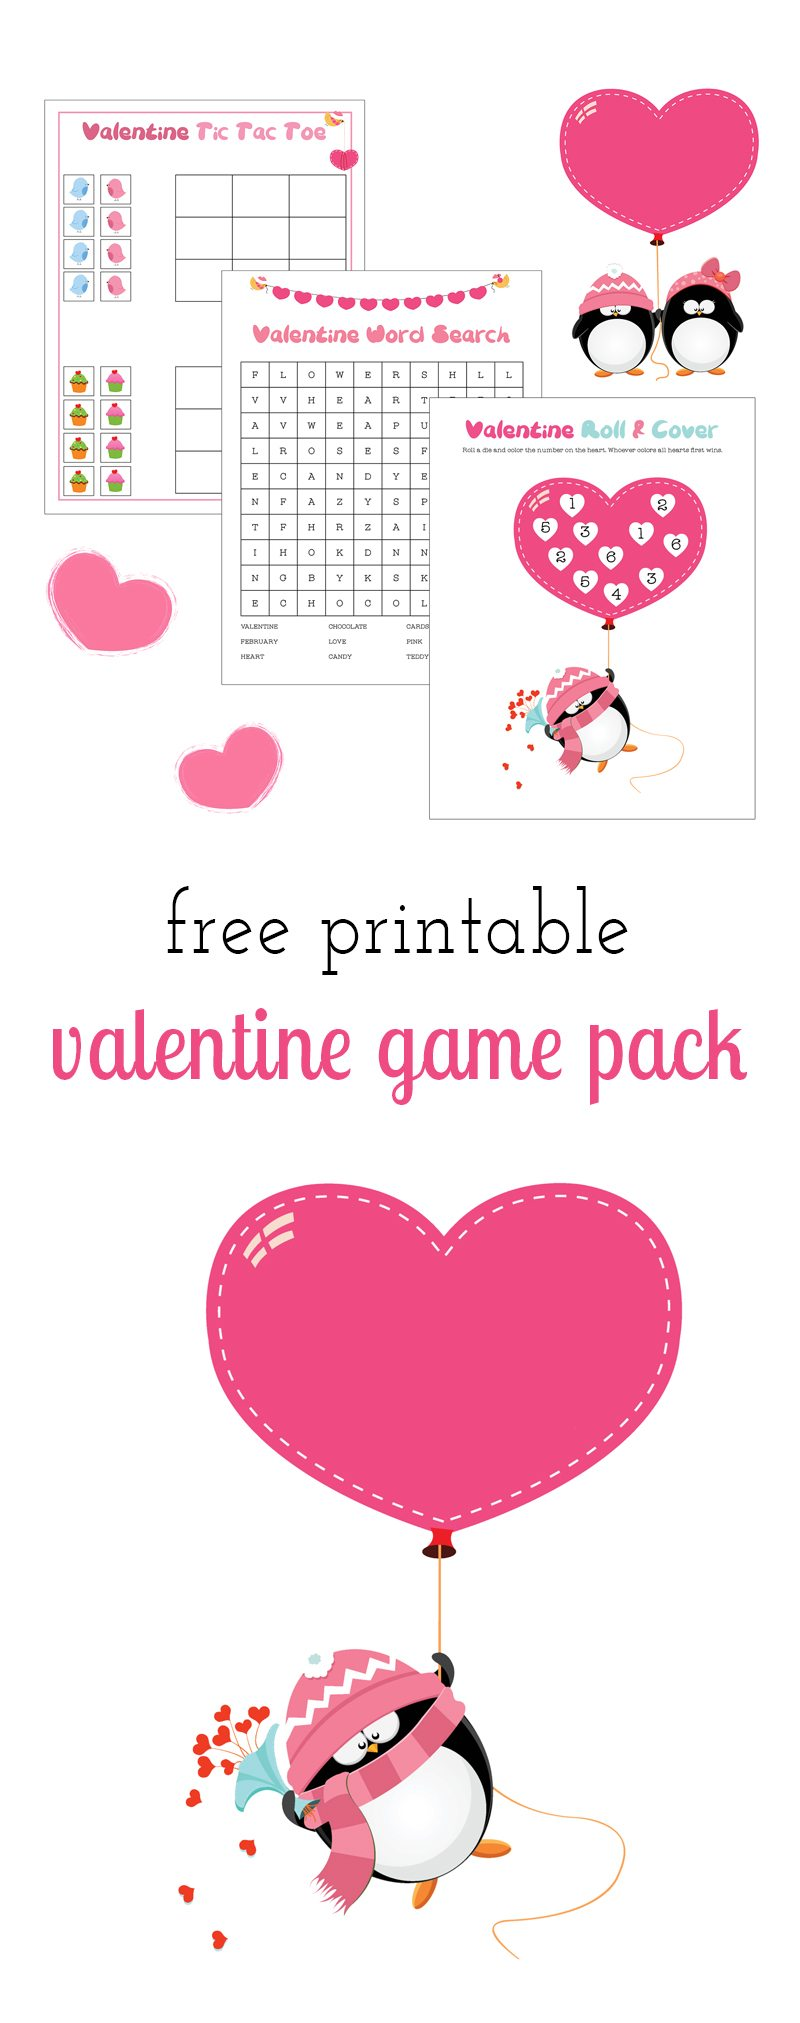 Perfect for school Valentine's Day parties, classroom fun, travel, or keeping busy at home, kids of all ages will enjoy this Free Printable Valentine Game Pack.